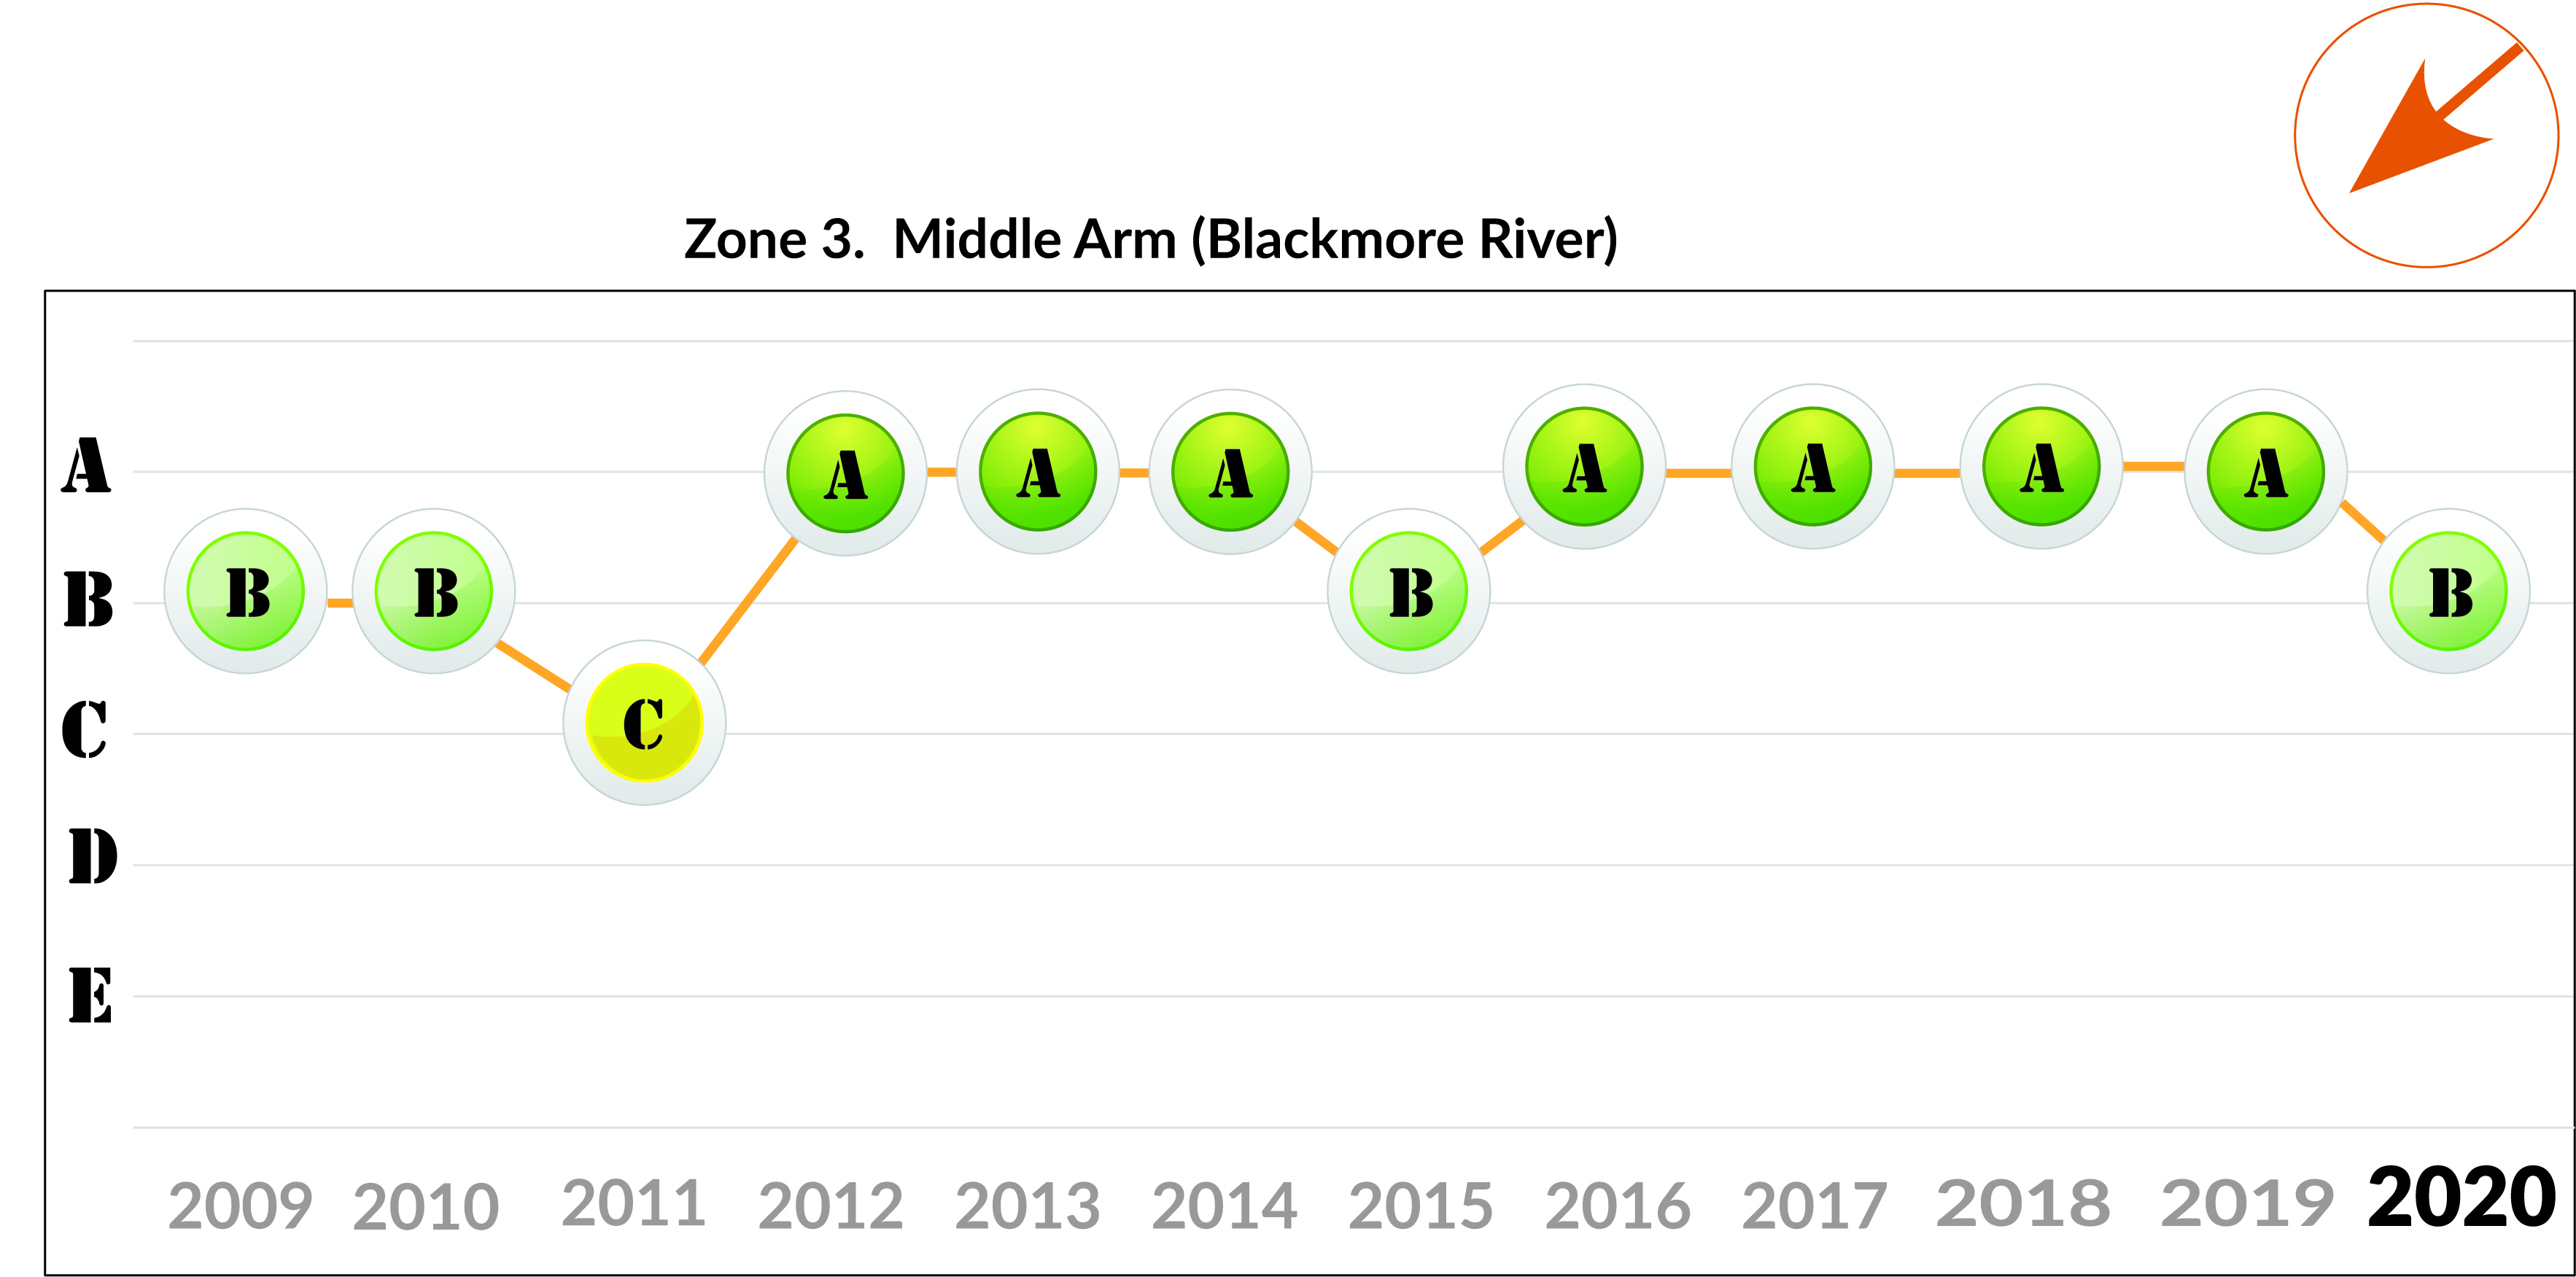 Zone 3 - Middle Arm trend 2020